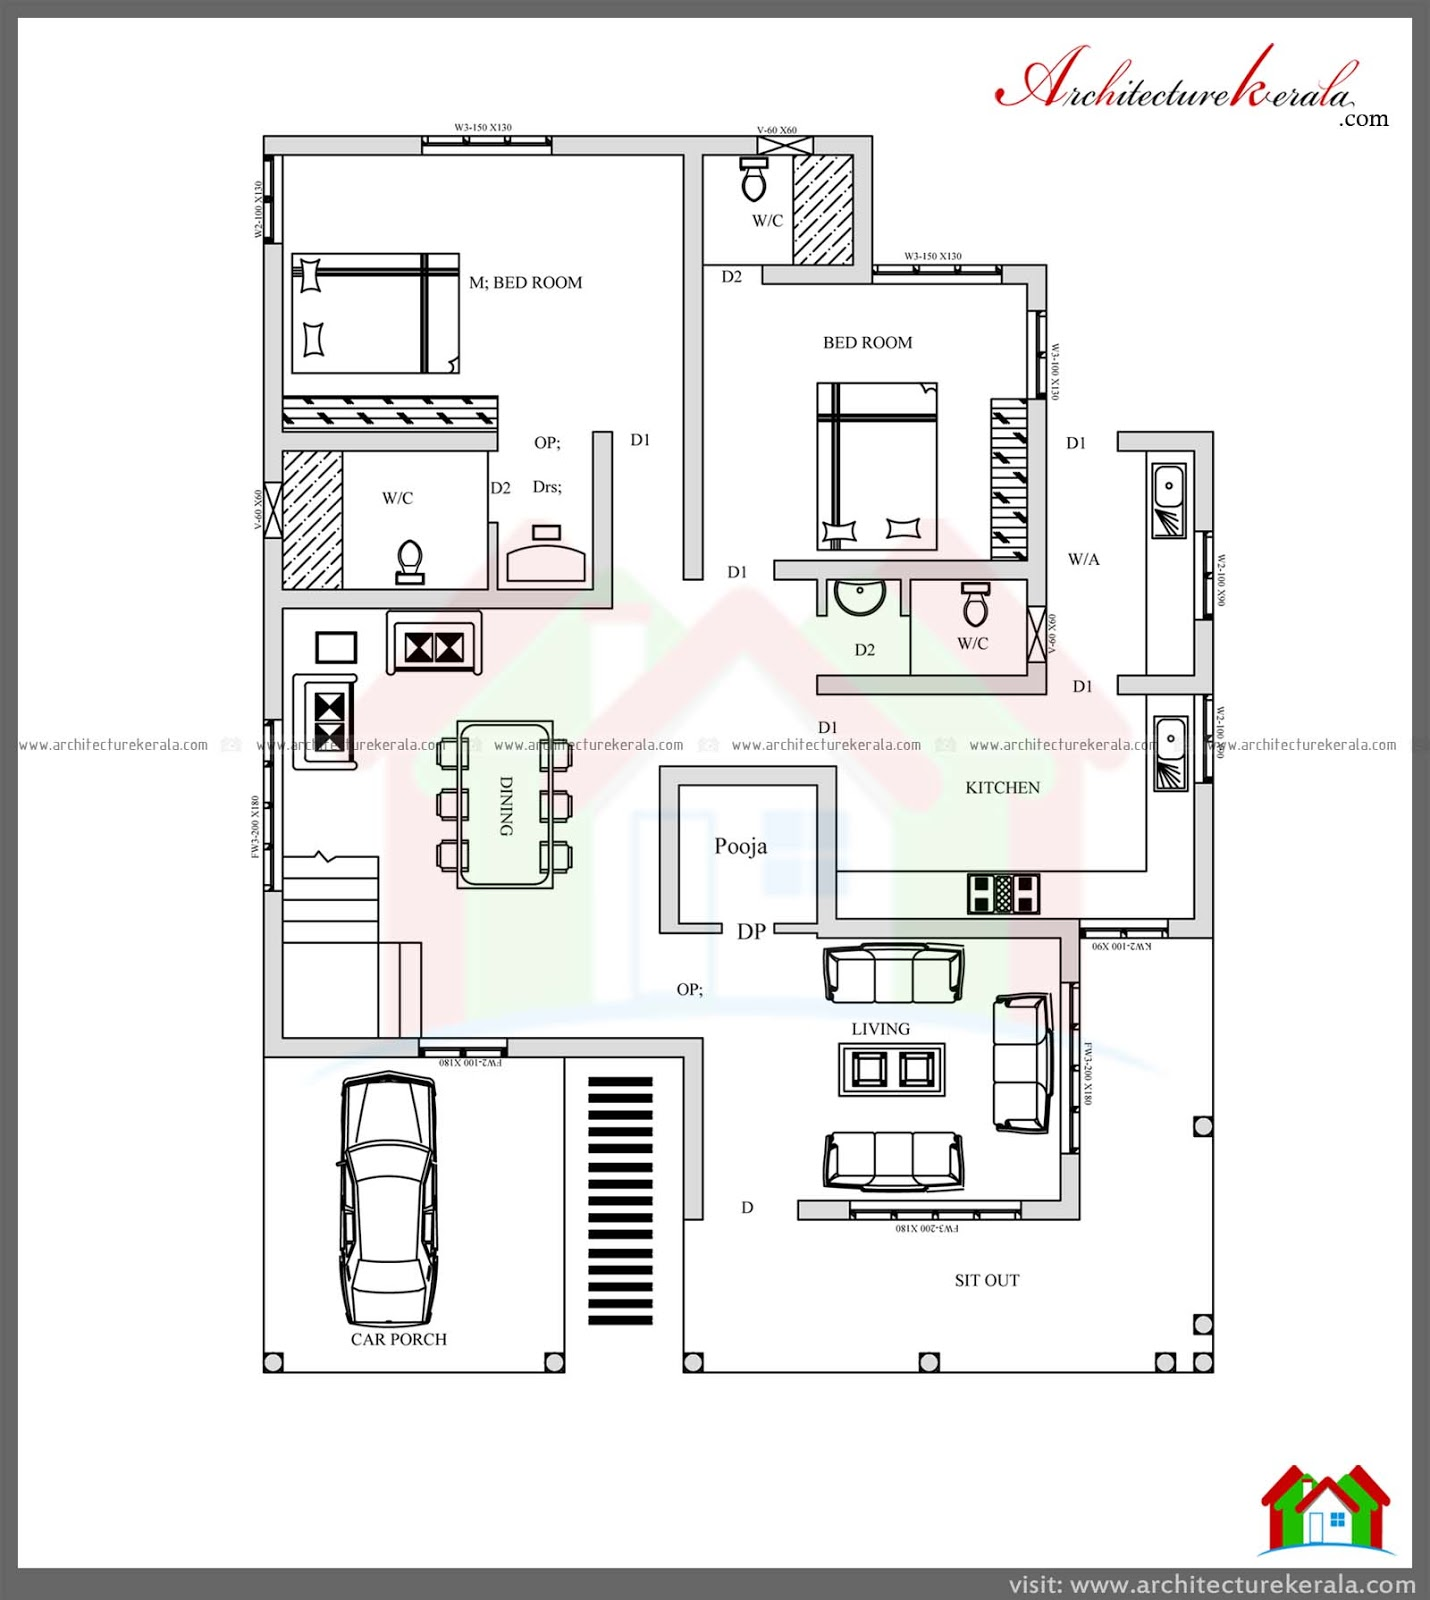 4 bed house plan with pooja room architecture kerala for 4 bedroom house plans kerala style architect